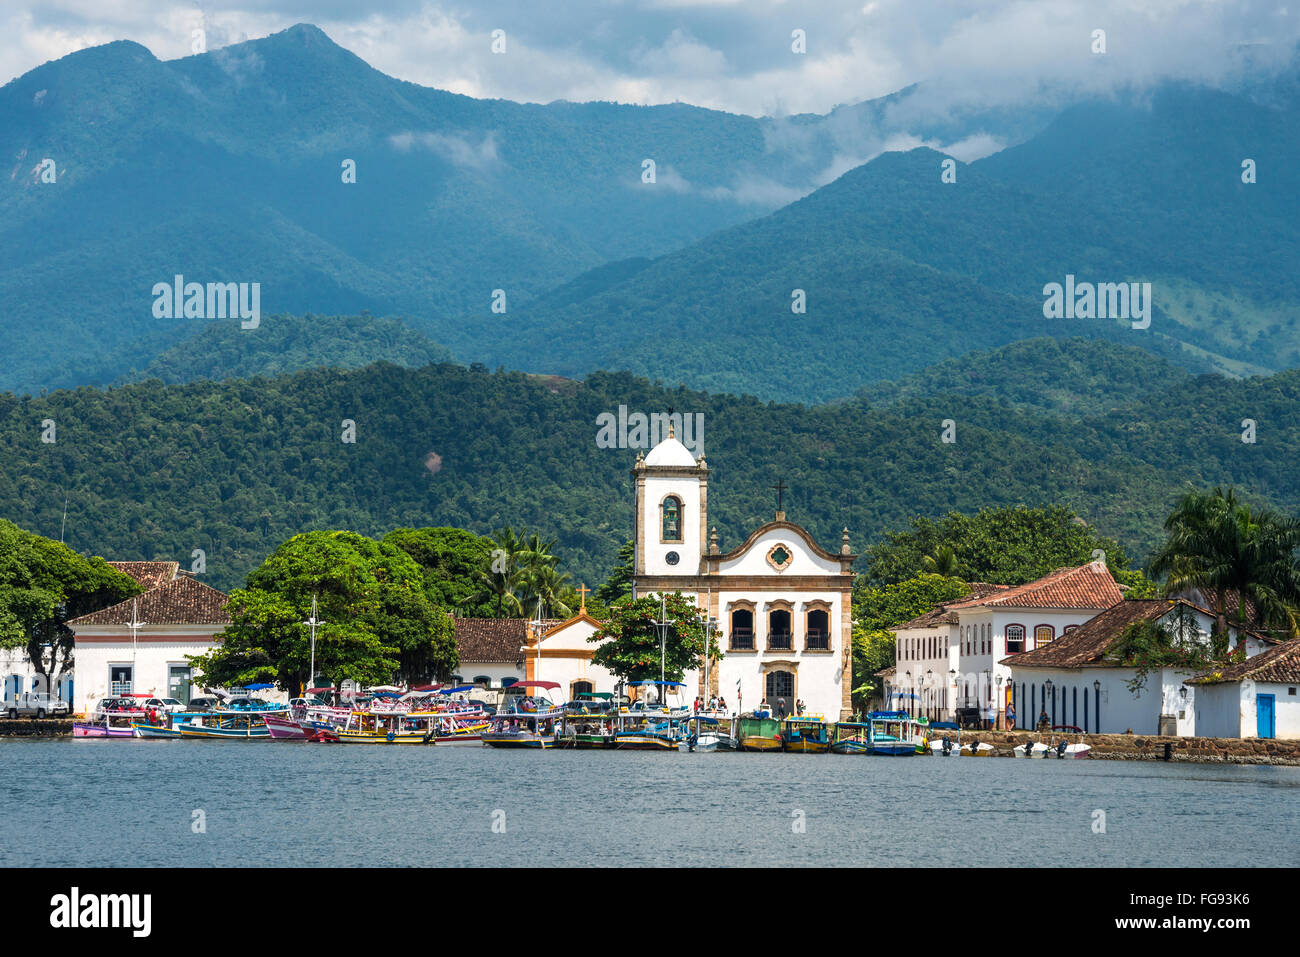 Tourist boats waiting for tourists near the Church Igreja de Santa Rita de Cassia in Paraty - Stock Image